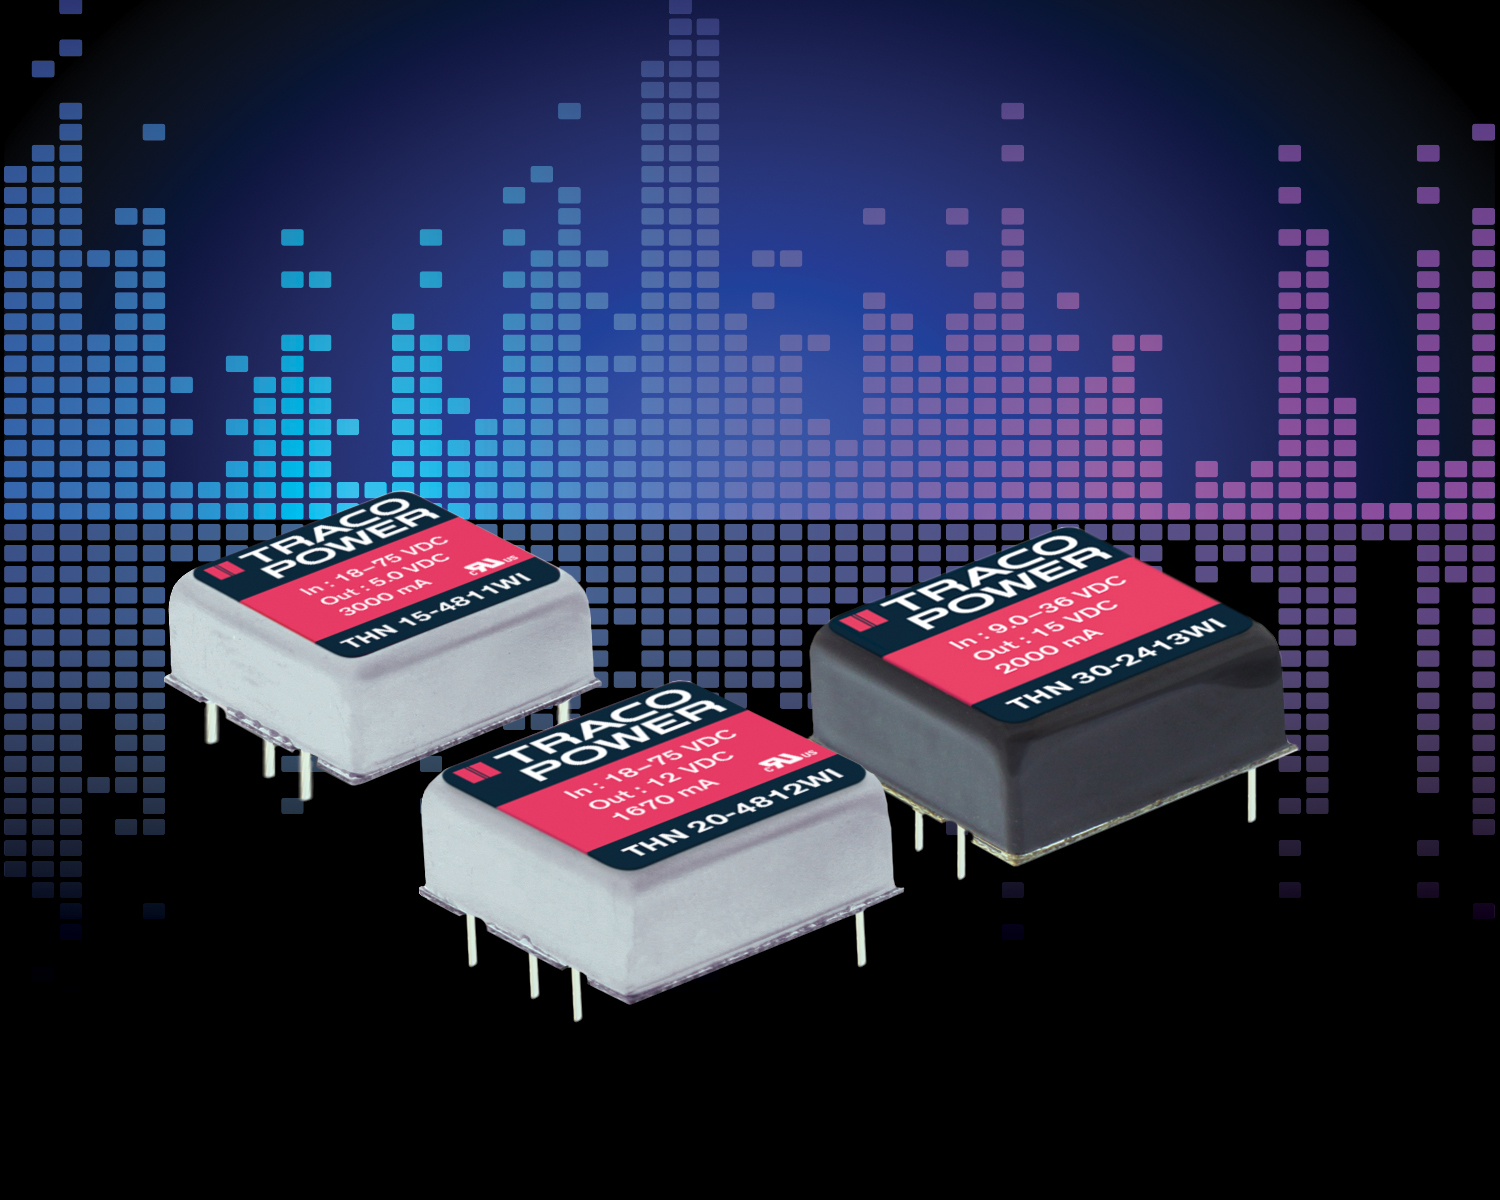 DC/DC Converters Optimized to Drive LDO Regulators